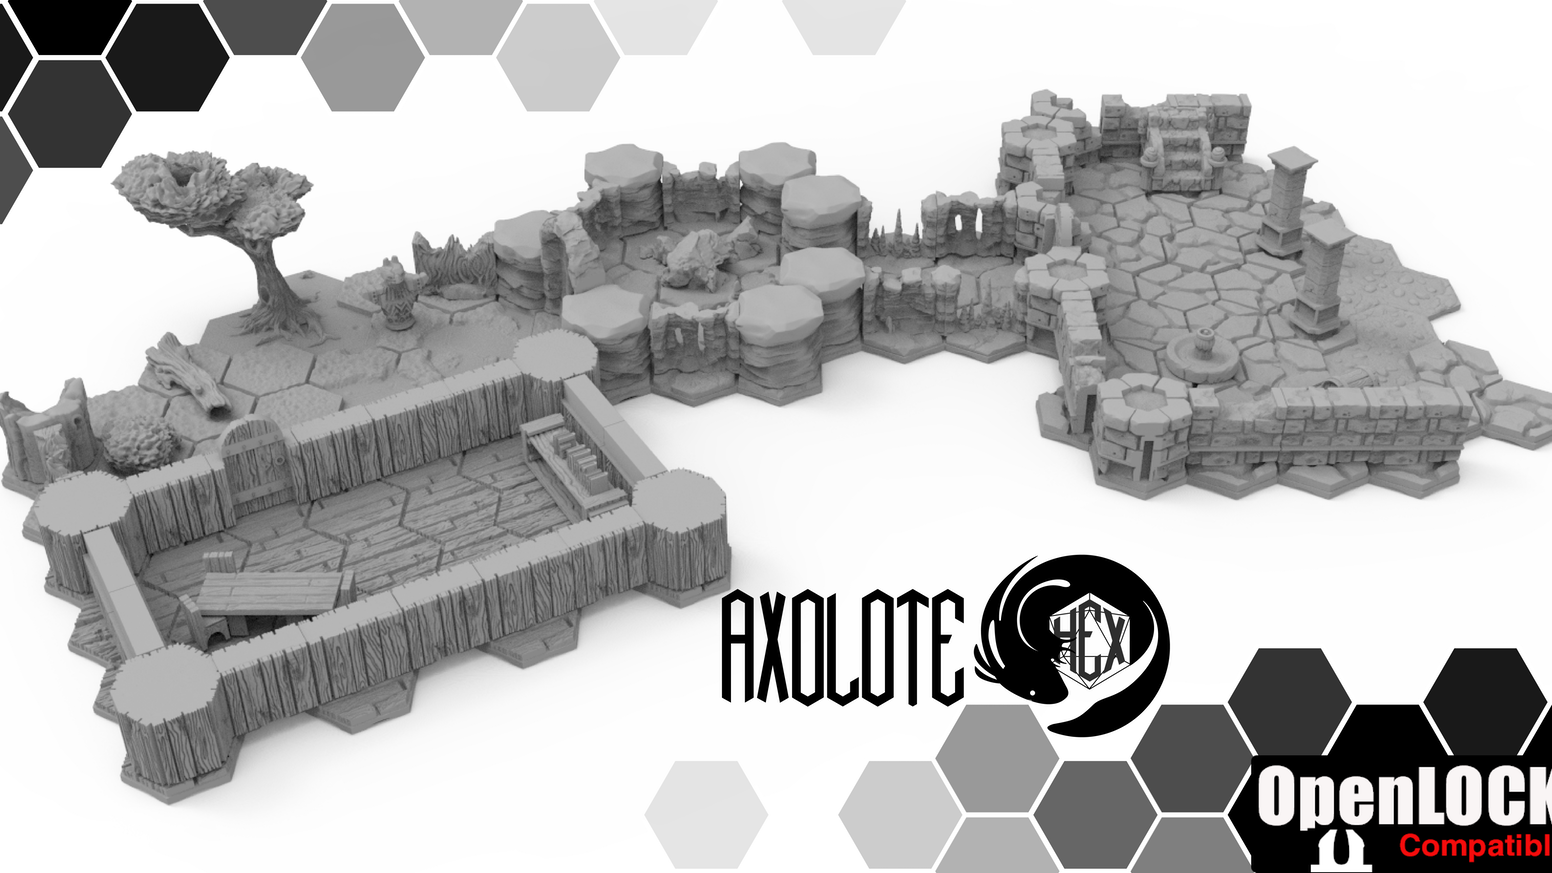 Axolote Hex: 3d hex dungeons by Axolote Gaming — Kickstarter